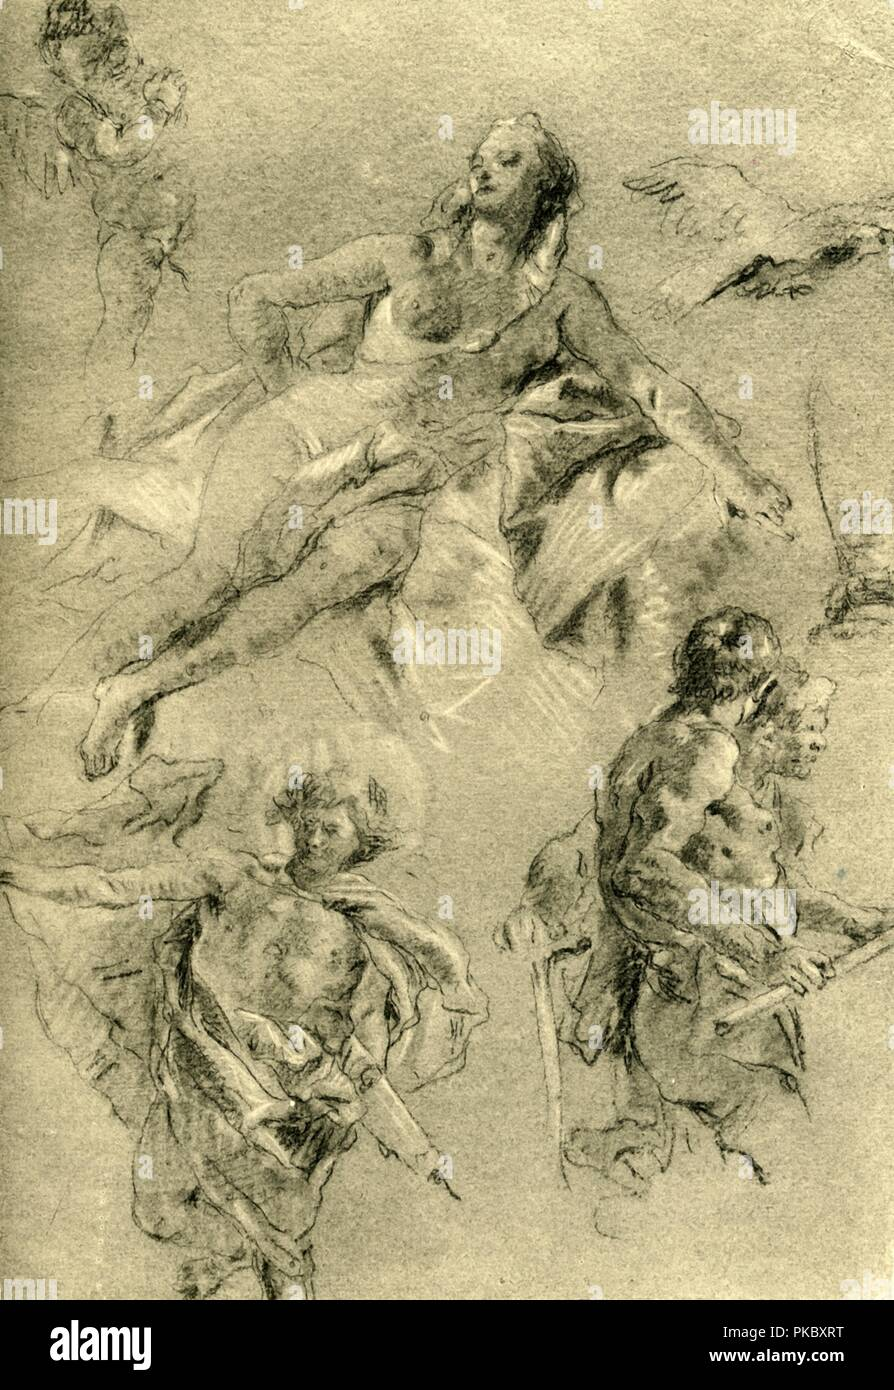 'Venus resting and other figures', c1762-c1766, (1928). Chalk on paper. Study for the  ceiling fresco in the Salle de Gardes of the Royal Palace in Madrid, Spain. At one time known to have been in the collection of the Kupferstichkabinett, Dresden, Germany. Italian Venetian painter and printmaker Giovanni Battista Tiepolo (1696-1770), worked not only in Italy, but also in Germany and Spain. He was commissioned to carry out frescoes in churches and palaces, and was elected President of the Academy of Padua. As well as his large-scale majestic works, he also produced etchings and oil paintings,  - Stock Image